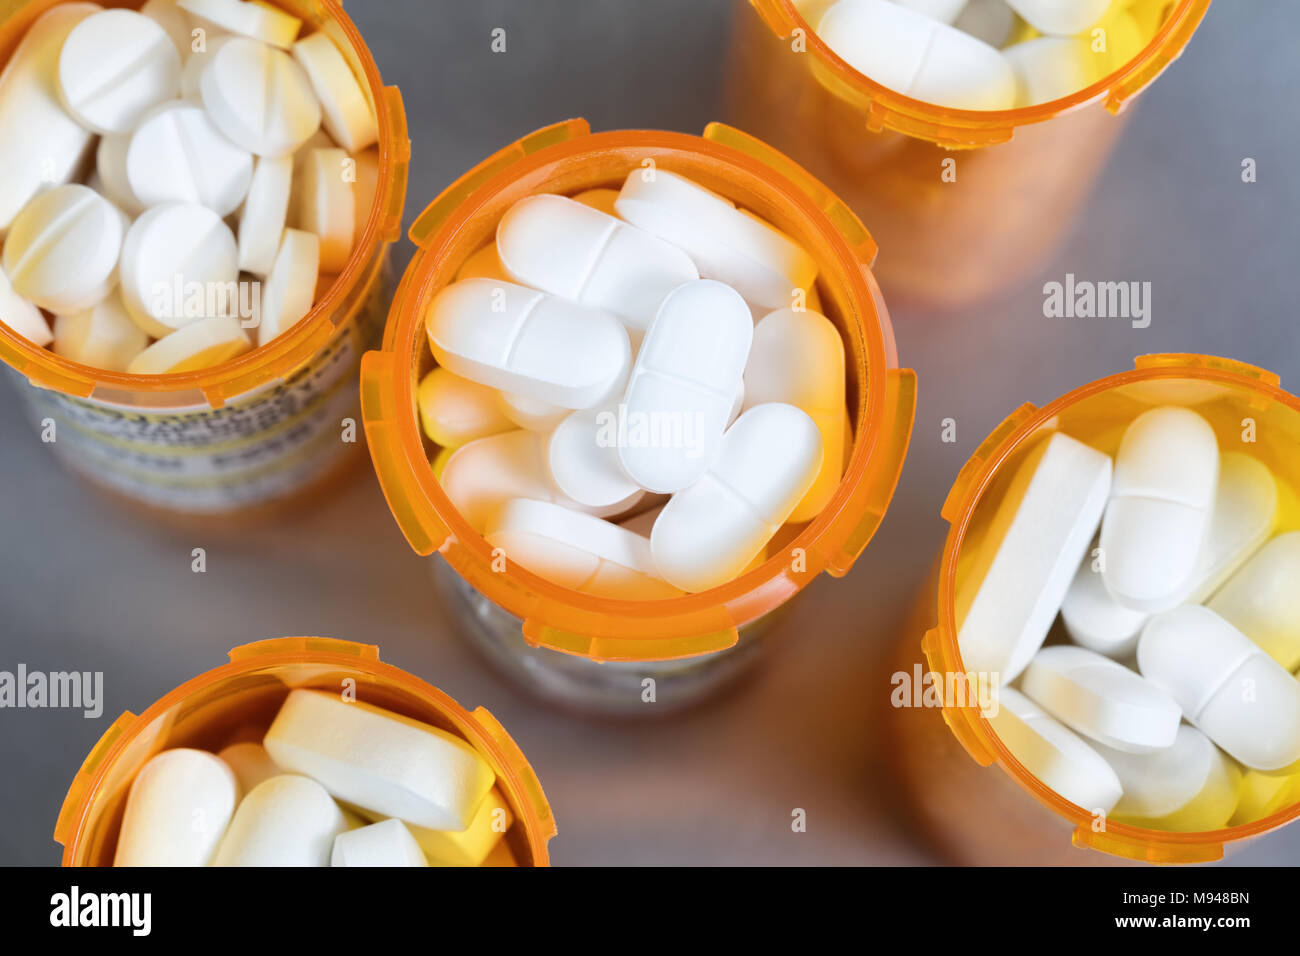 Close up overhead view of full prescription bottles on stainless steel background - Stock Image